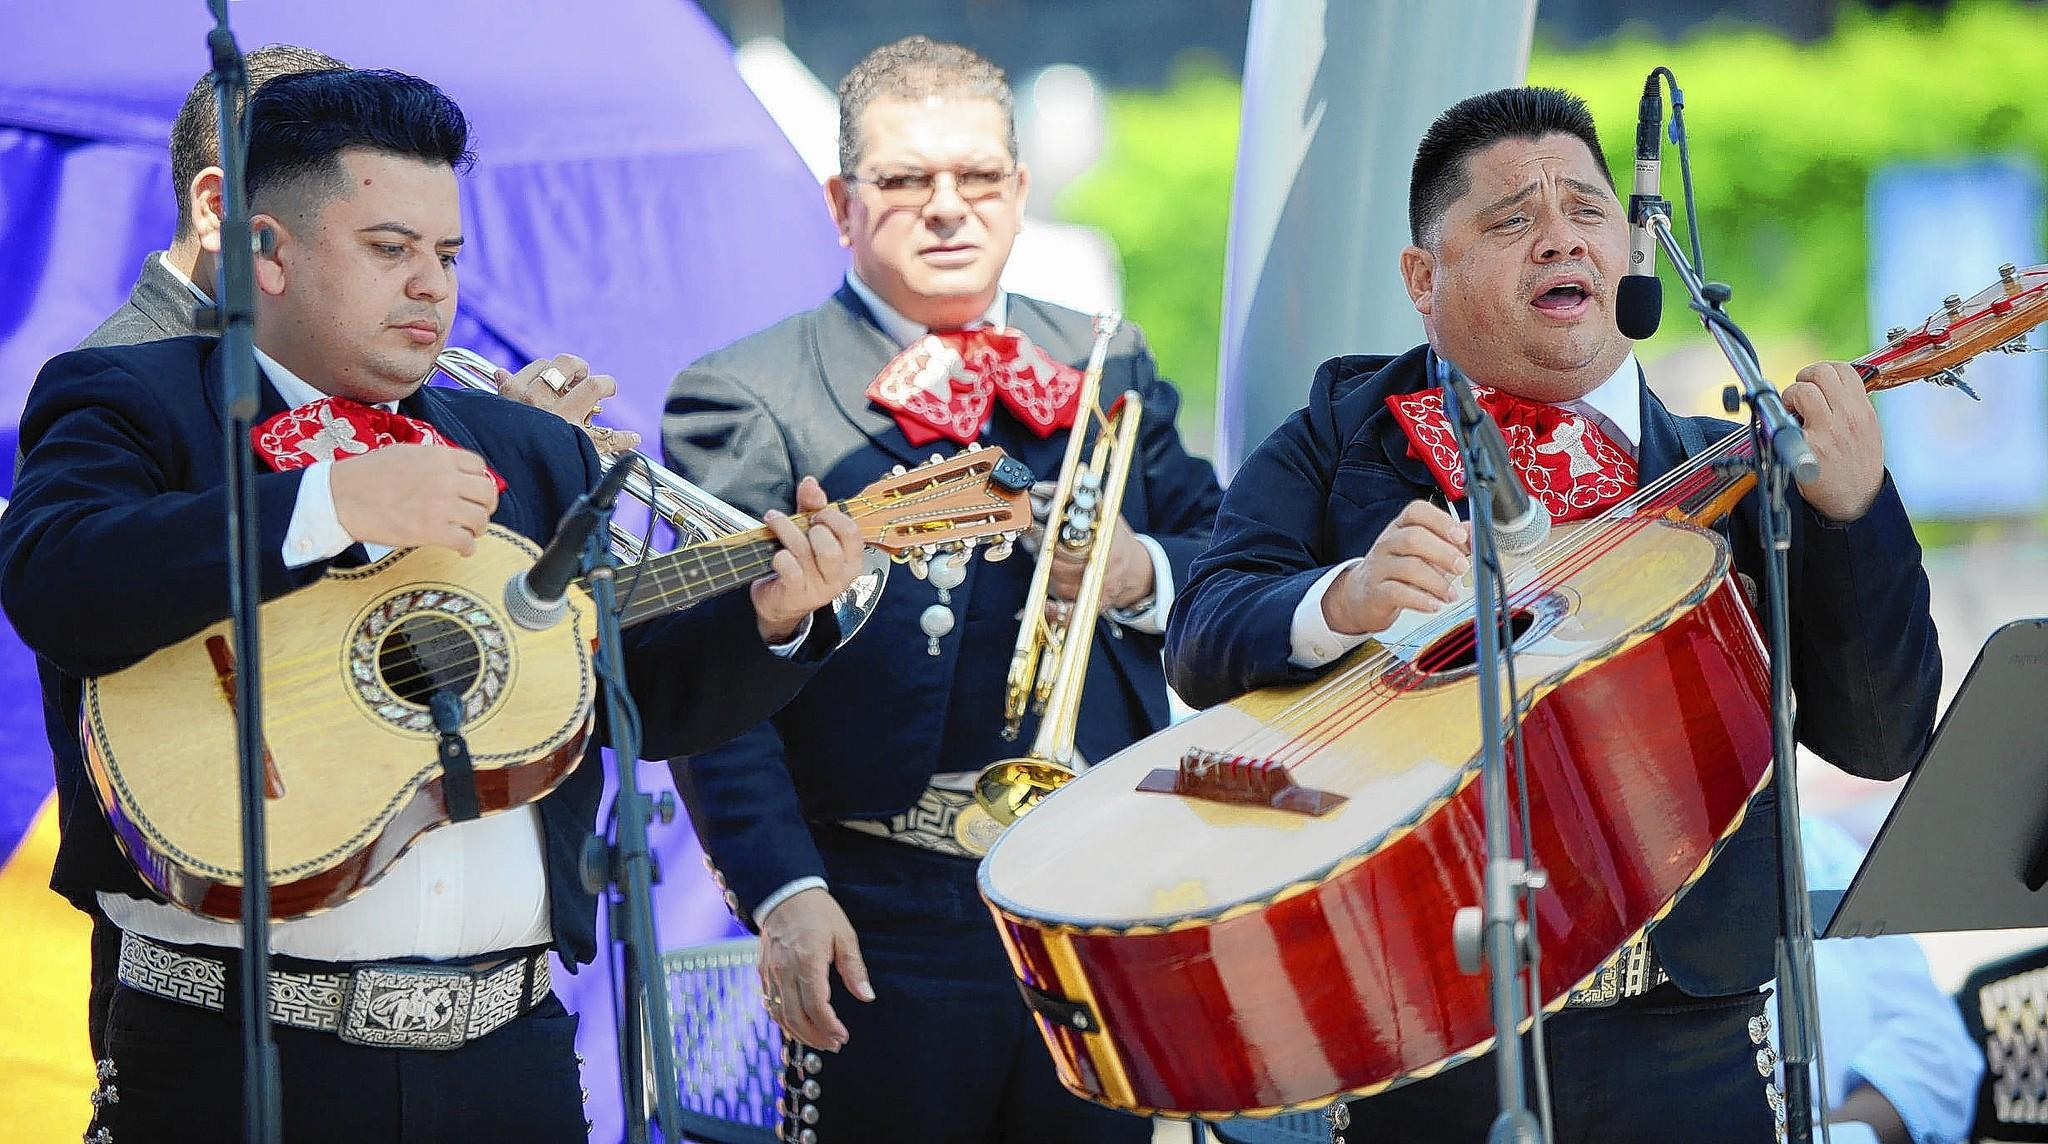 Mariachi Maya Internacional performs during a Mass on Sunday, the final day of the three-day Sabor Latin Festival at the Air Products Town Square at SteelStacks. The festival included free concerts and lots of ethnic food throughout the weekend.